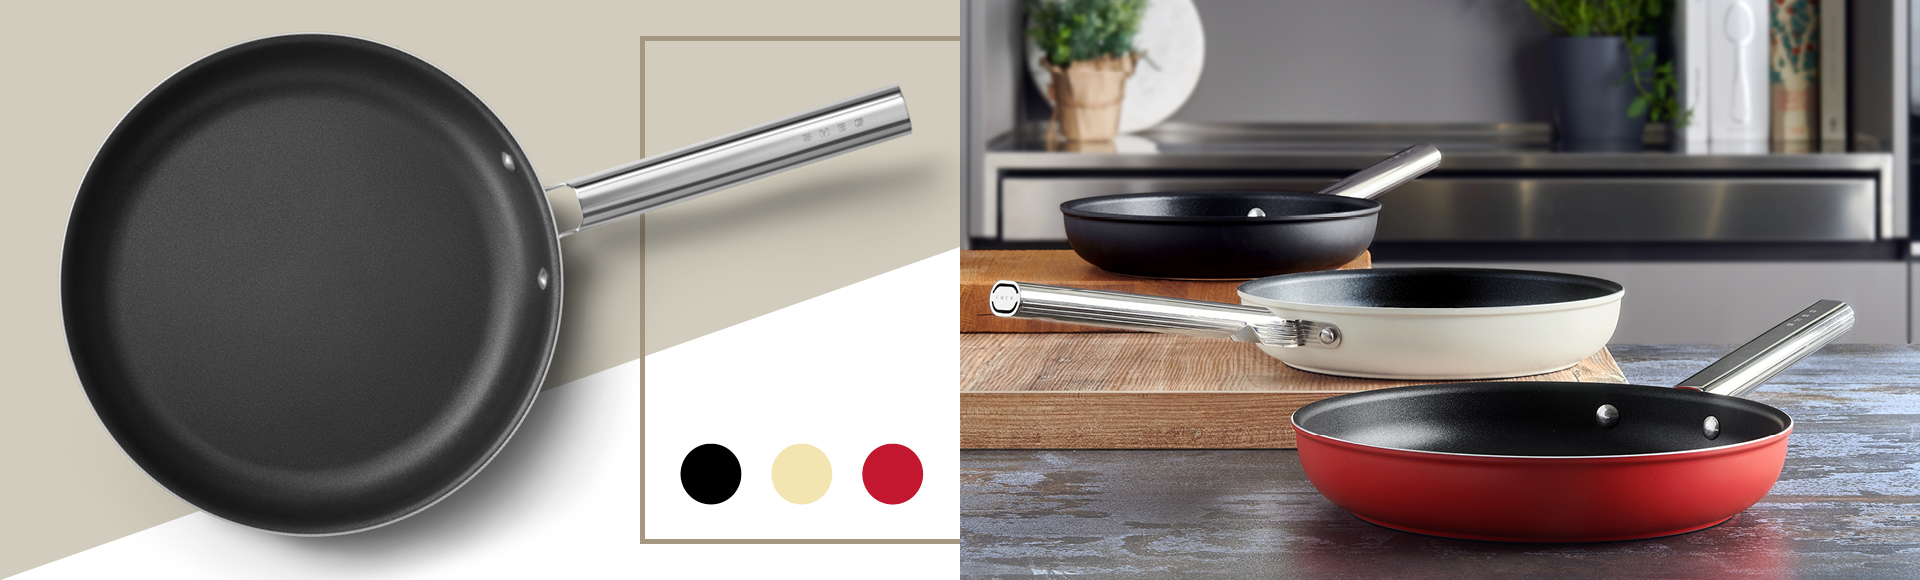 Cooking in color with the Smeg cookware line